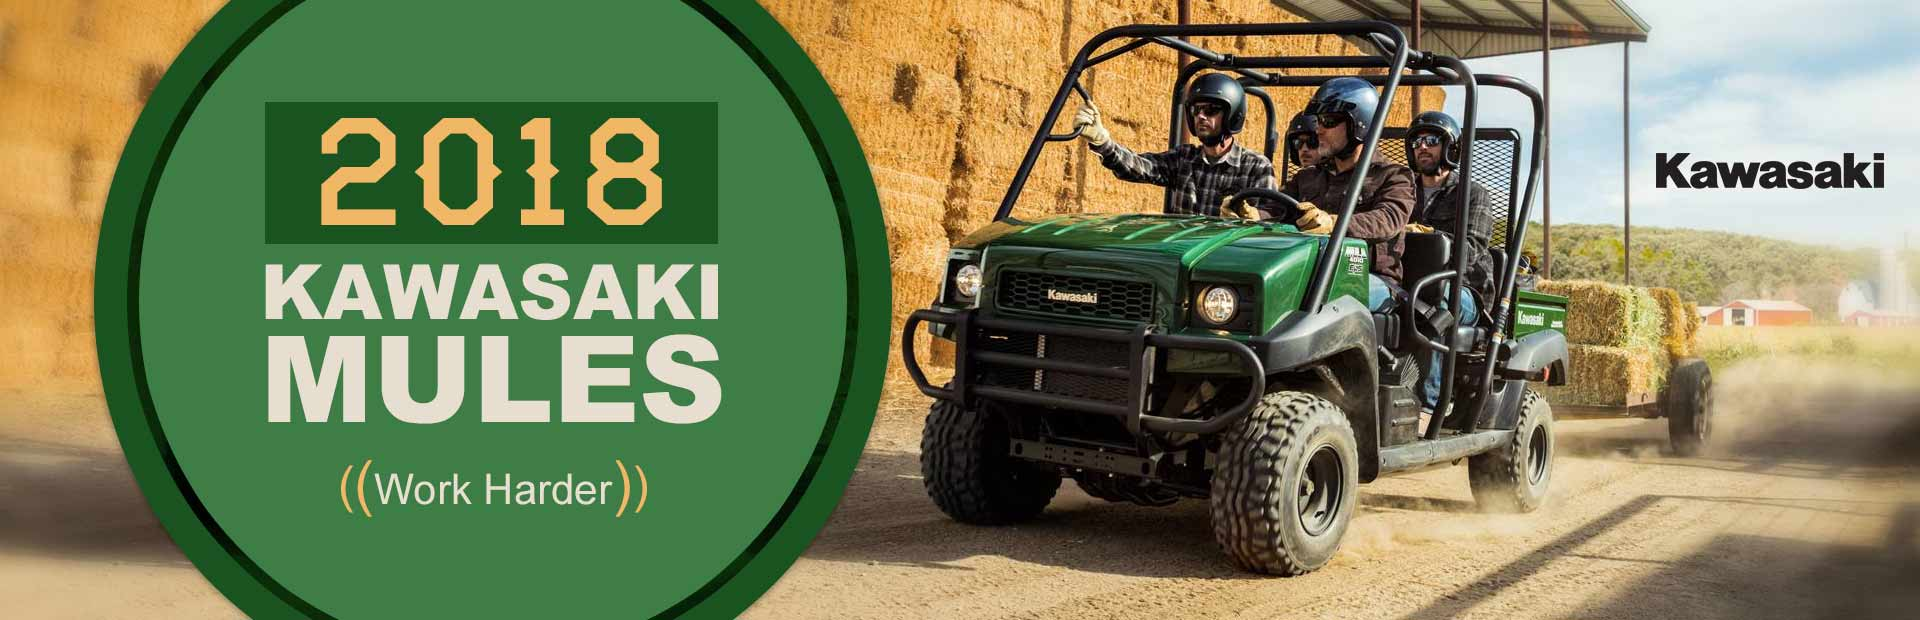 2018 Kawasaki Mules: Click here to view the models.